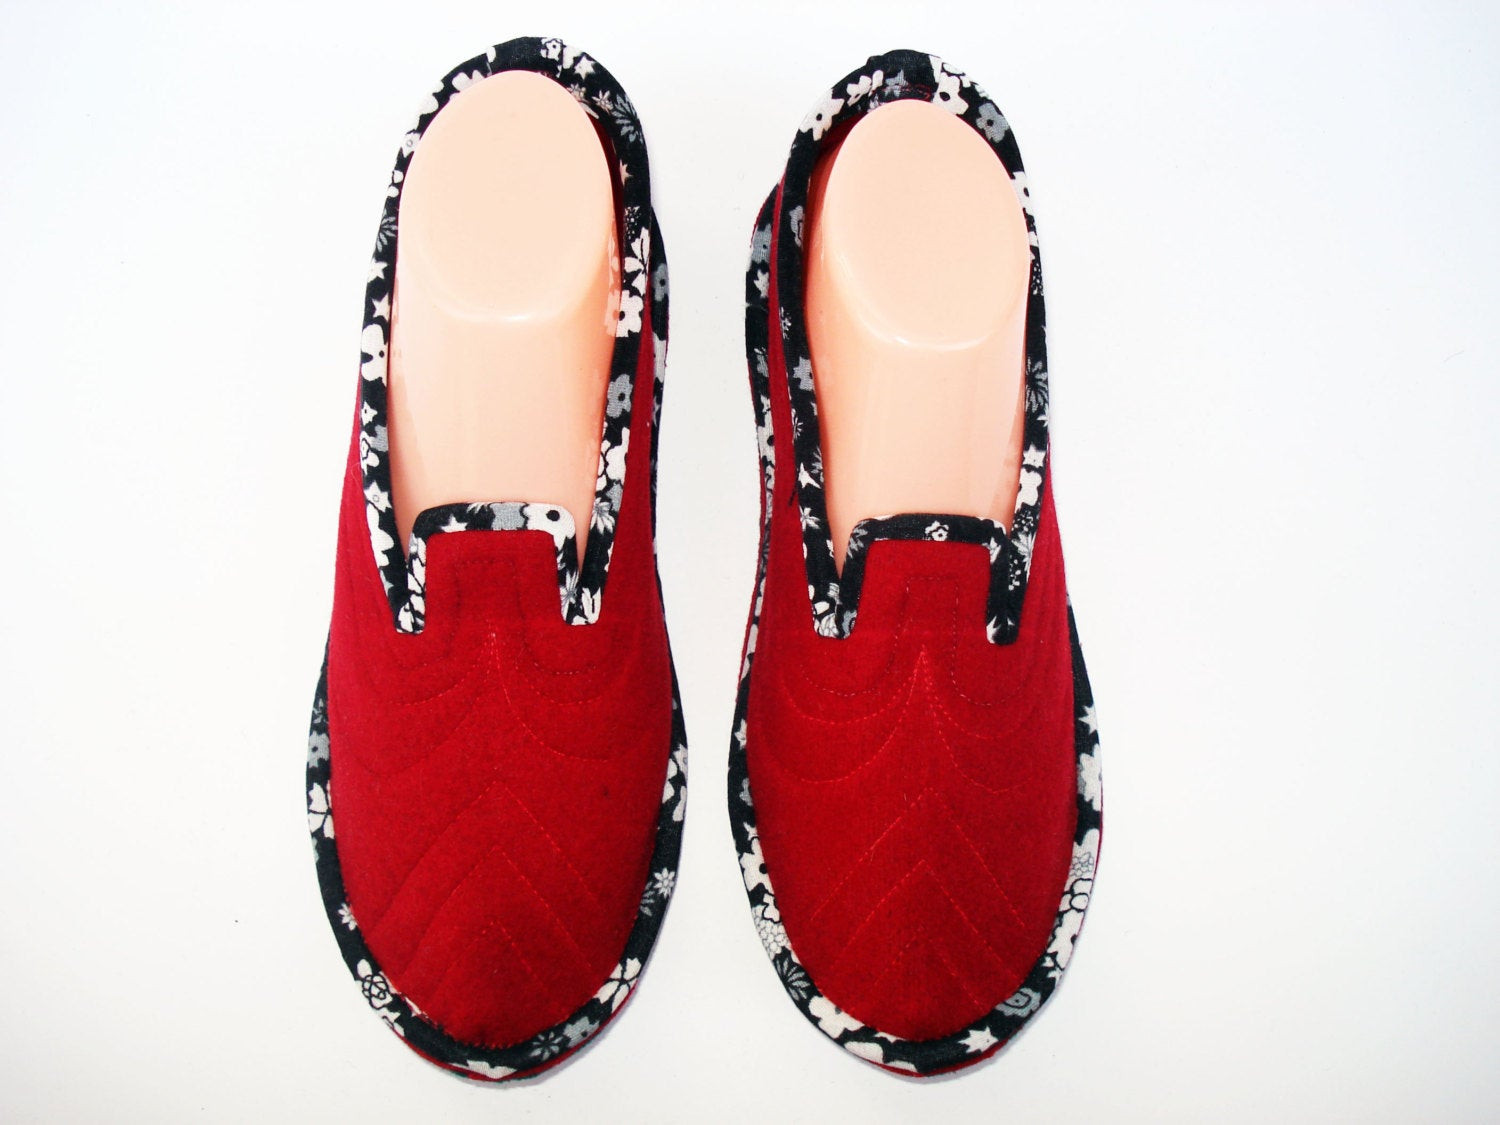 Bedroom Shoes For Womens  Red Womens Slippers Home Slippers House Slippers Bedroom